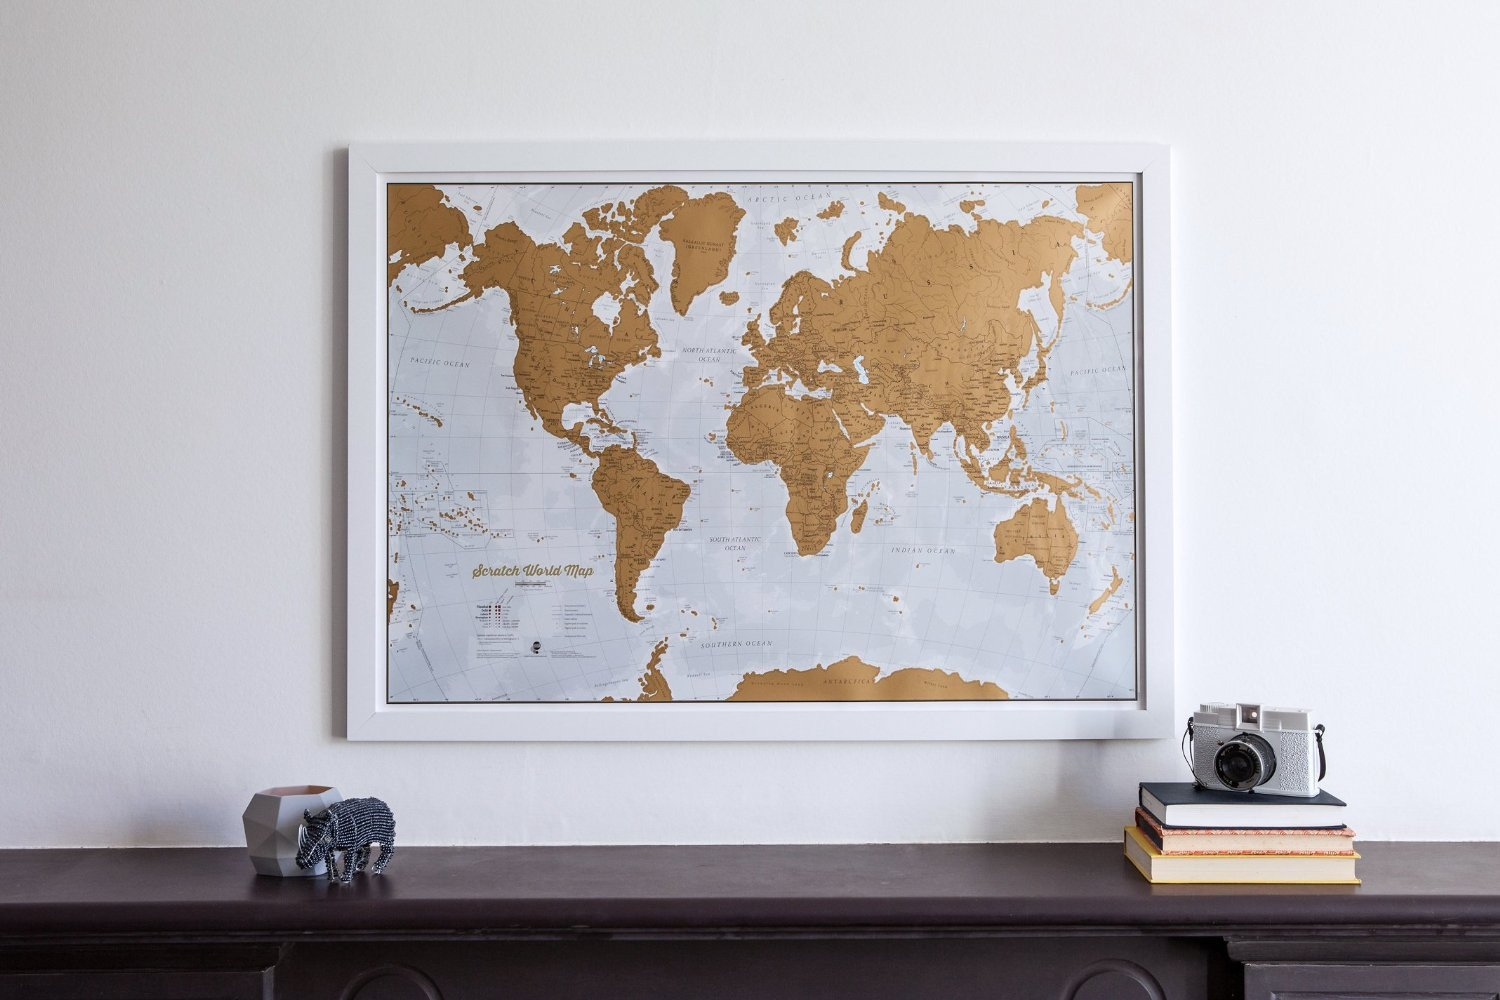 Scratch world map scratch off places you travel scratch world map scratch off places you travel gogetglam gumiabroncs Image collections